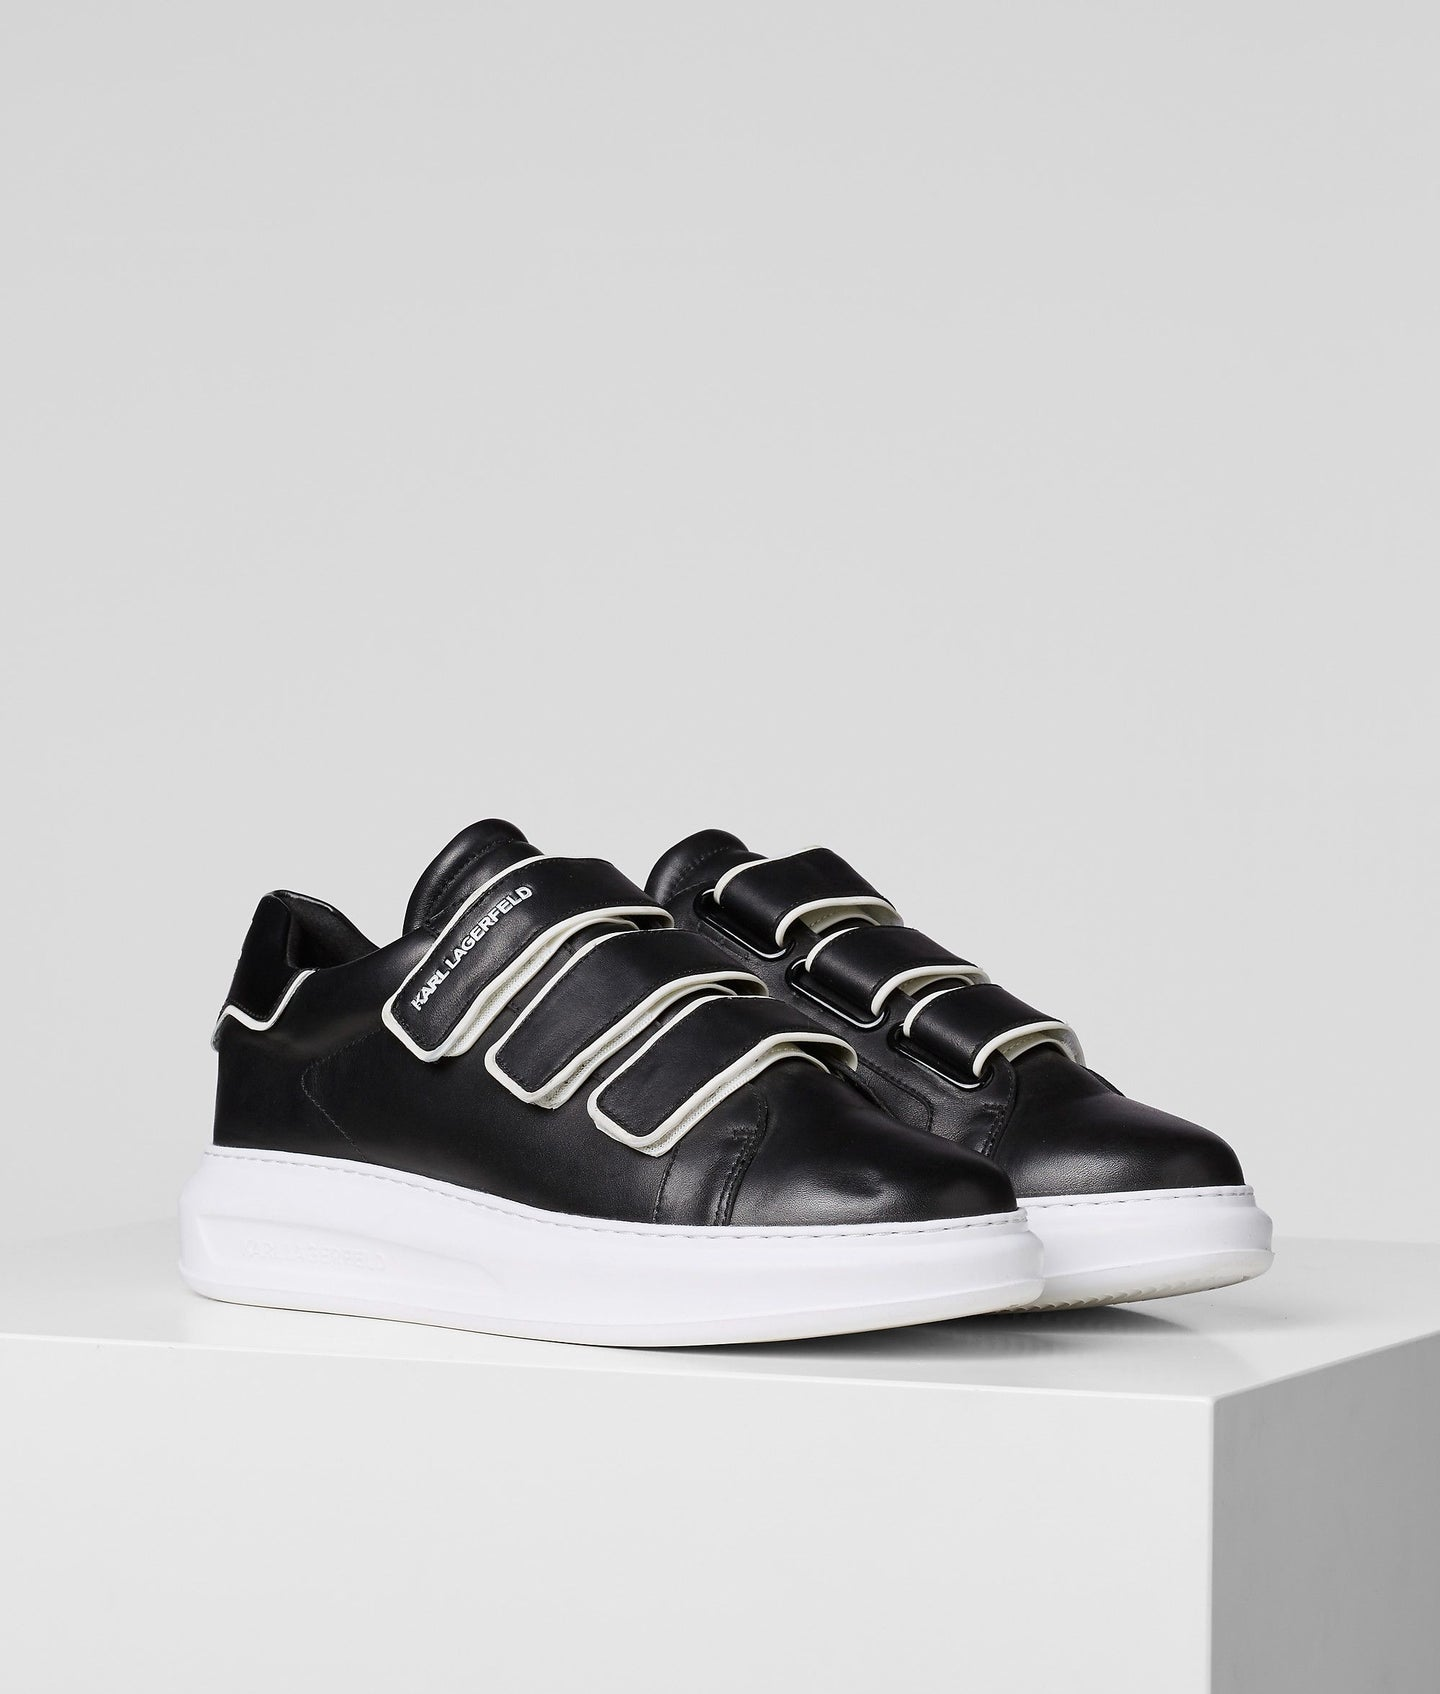 KAPRI MUTLI-STRAP LOW-TOP SNEAKERS